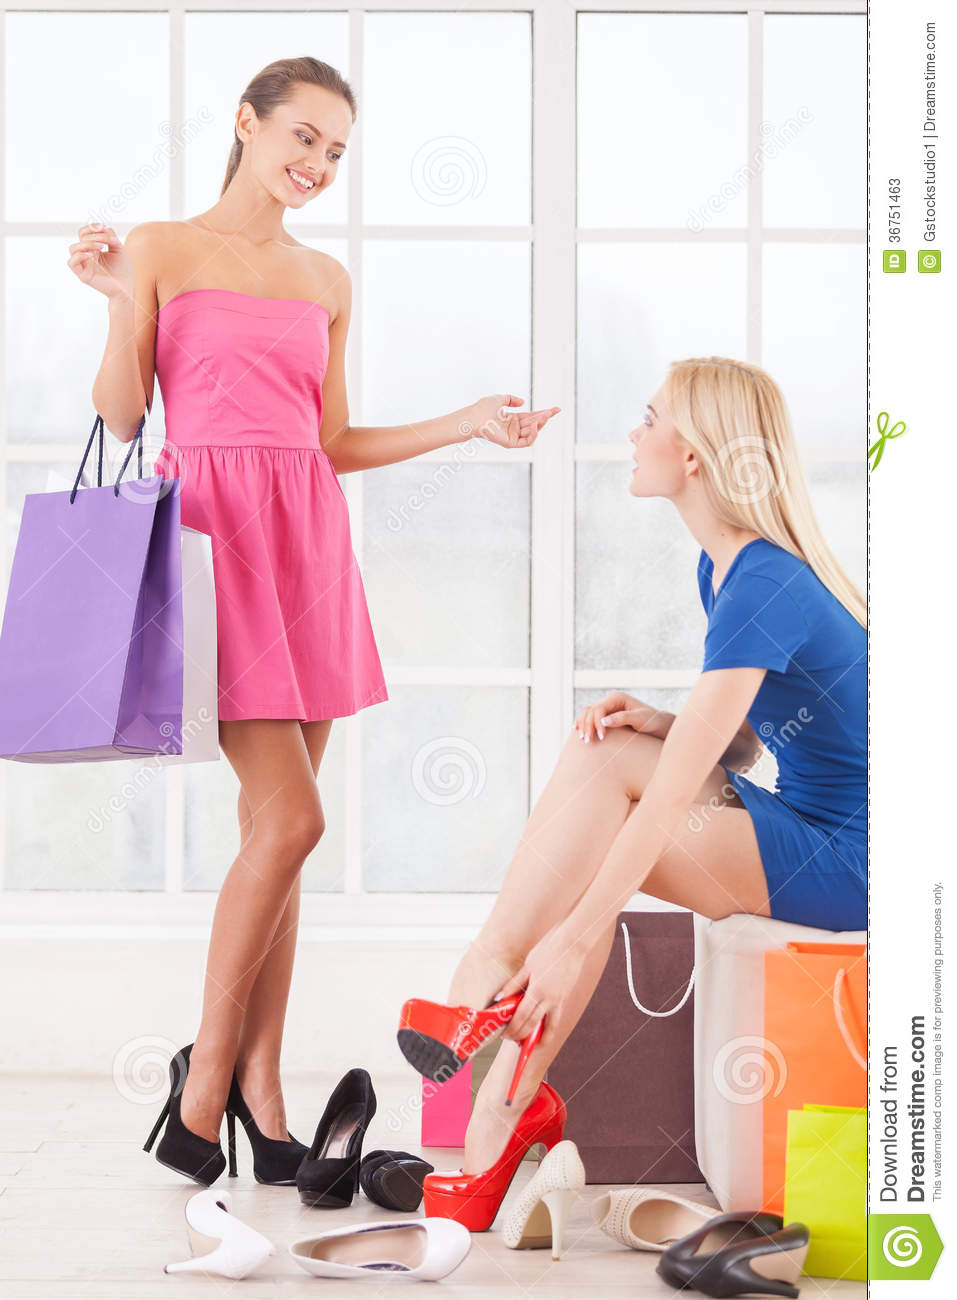 Shopping online clothes and shoes